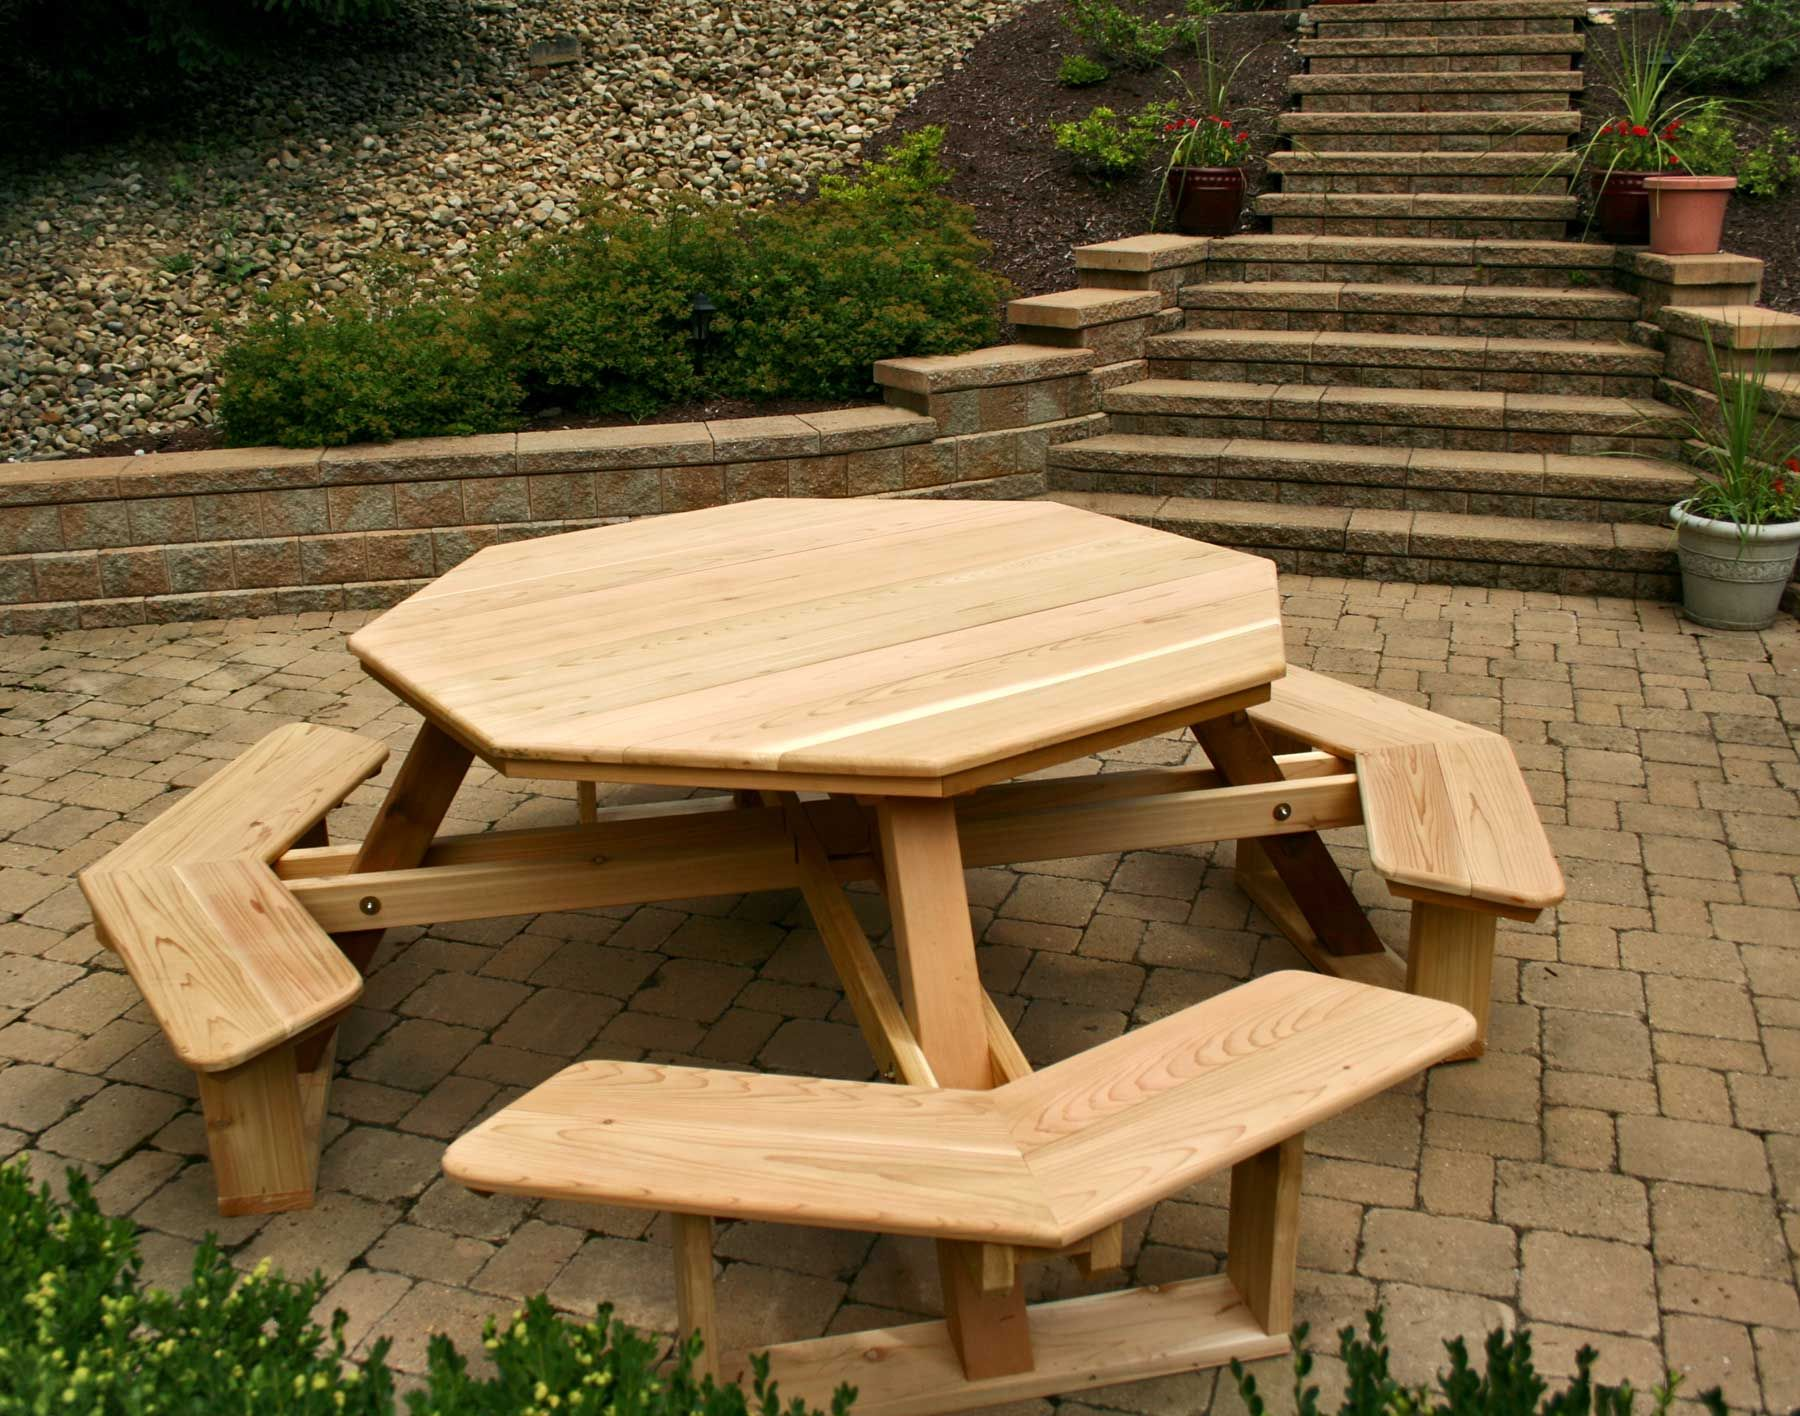 Diy Patio Table And Chairs Furniture Hexagon Table Picnic Table Plans With Separate